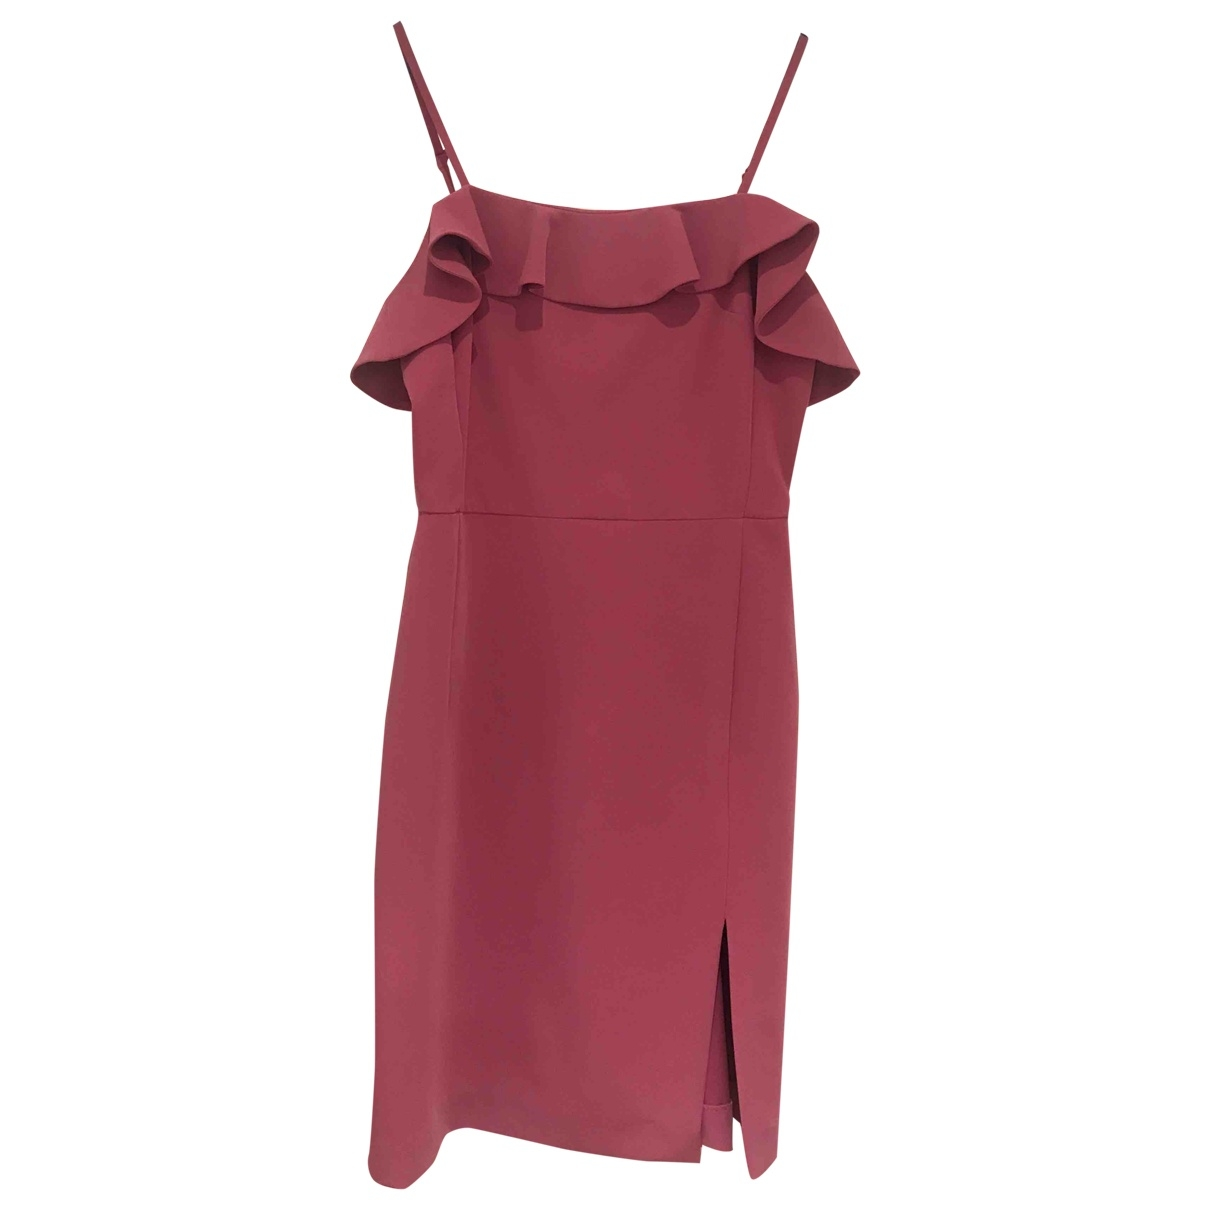 & Other Stories \N Kleid in  Rosa Polyester